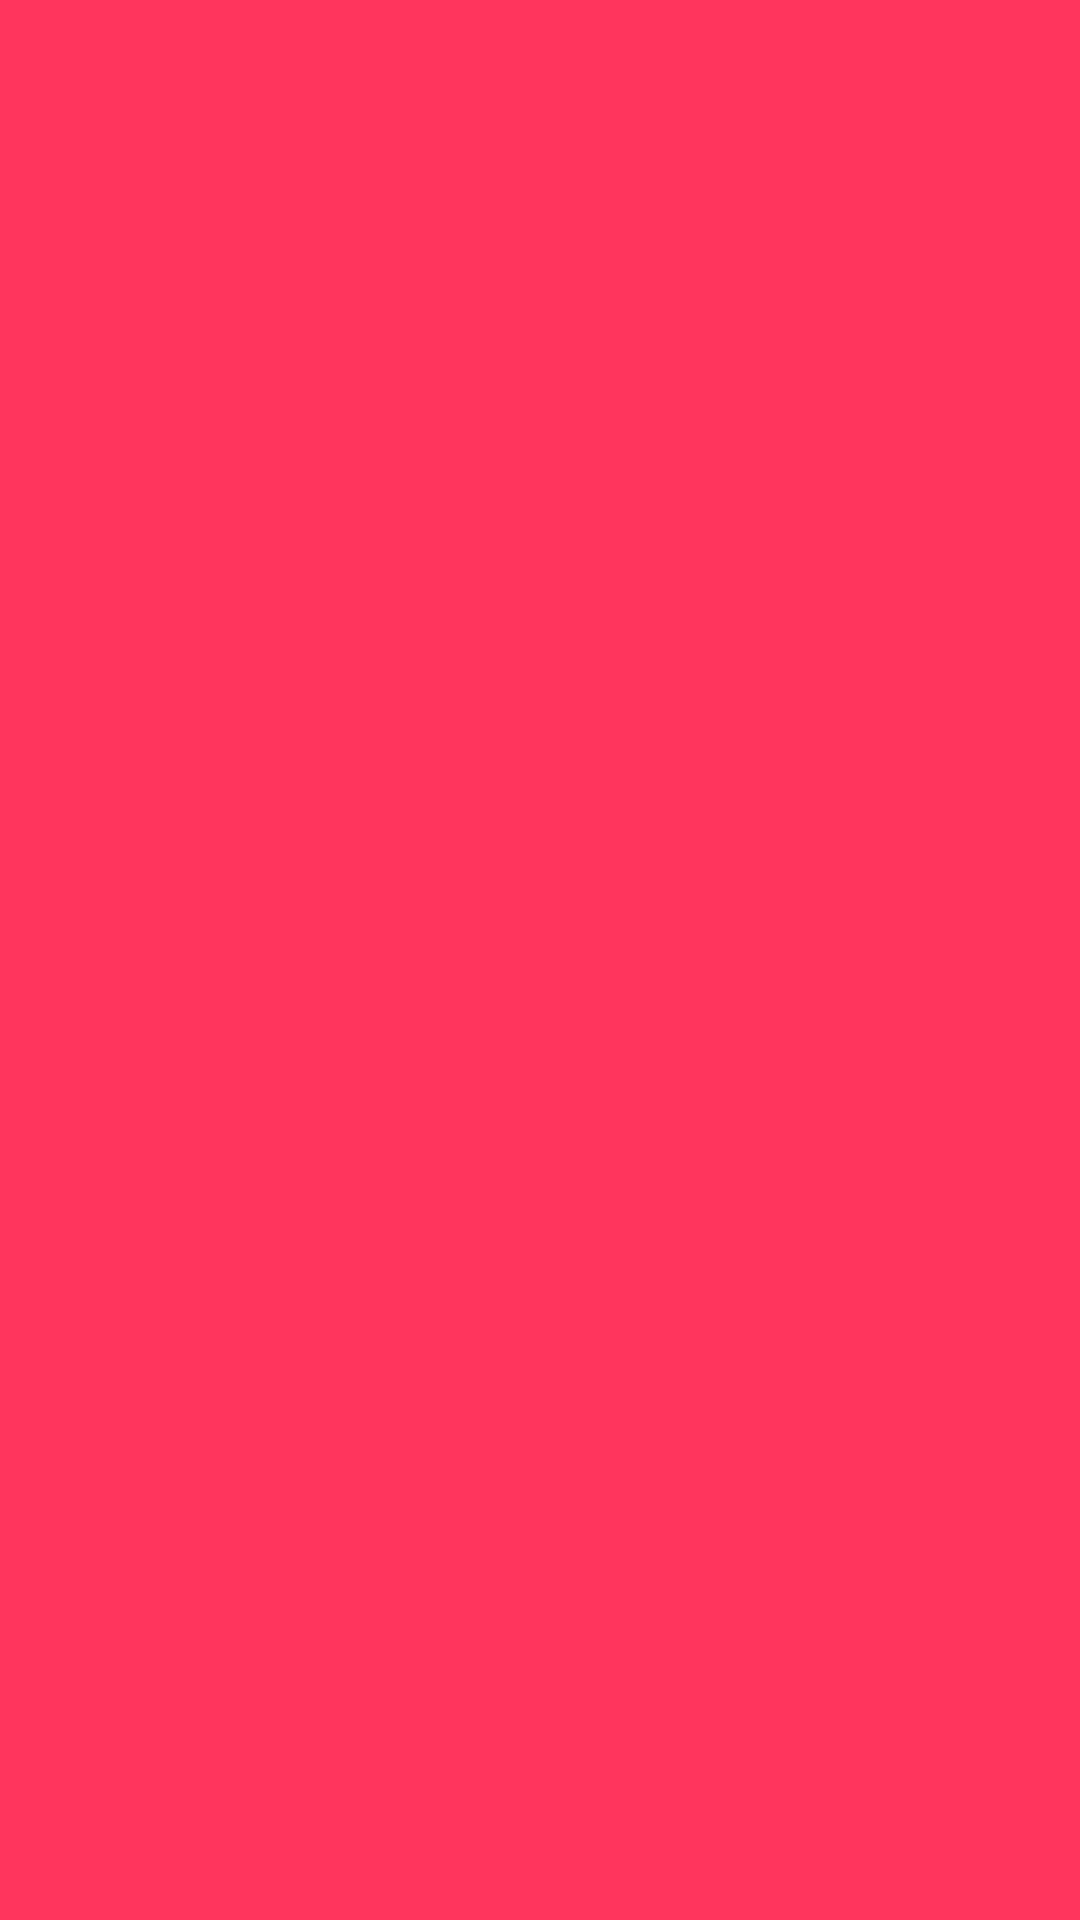 1080x1920 Radical Red Solid Color Background